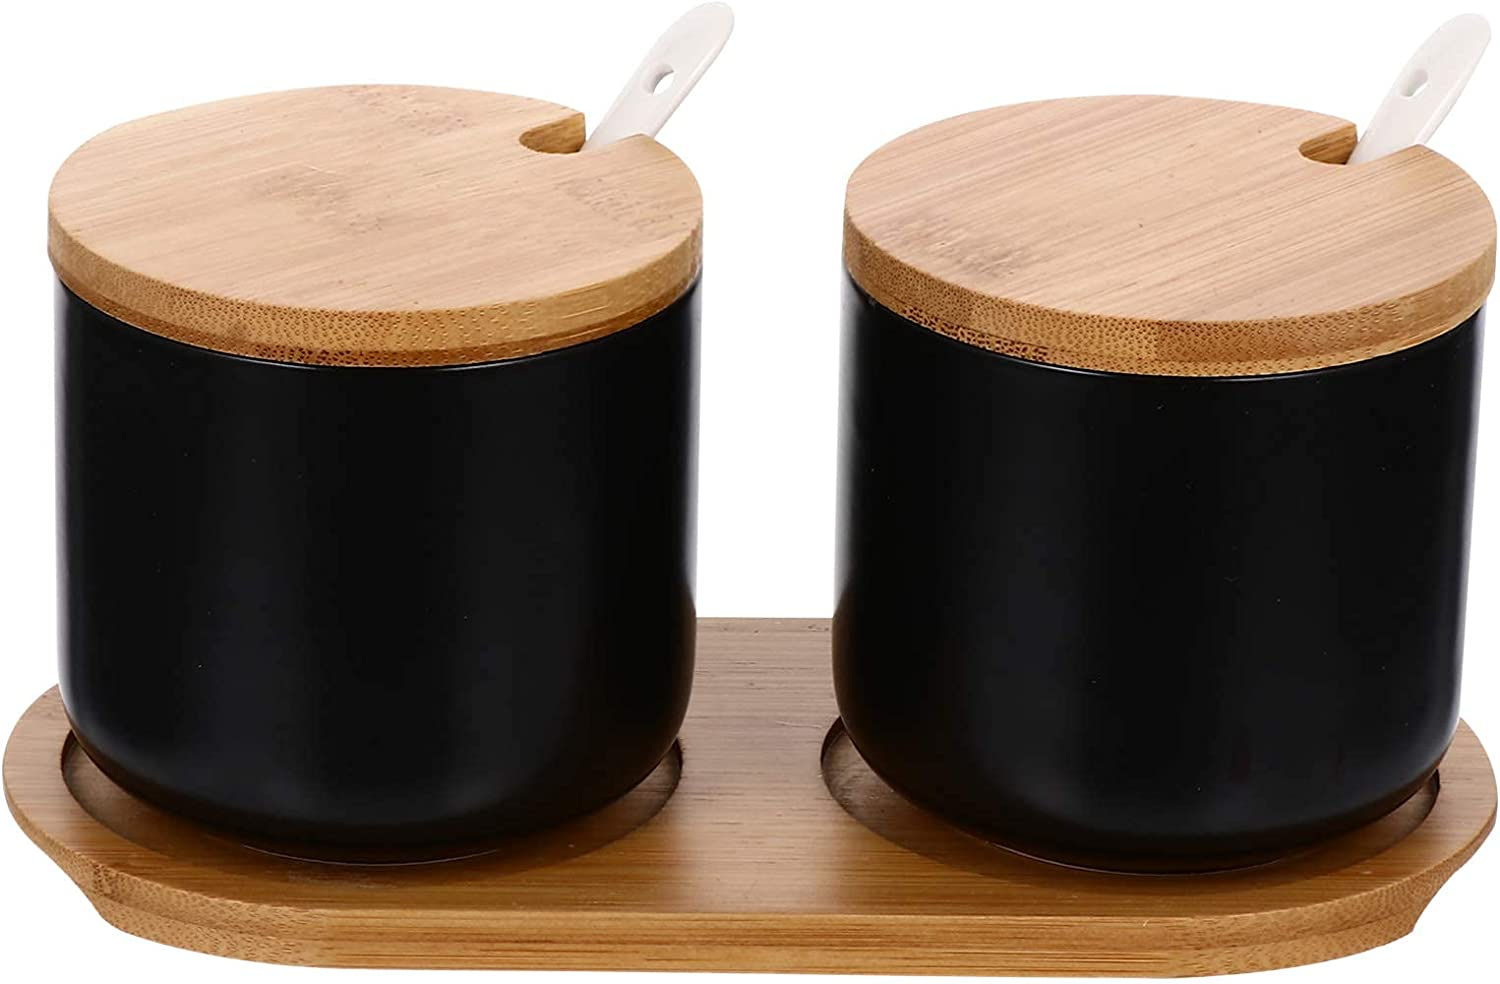 BERTY·PUYI Sugar Bowl Brand new with Spoon Wooden Jars Lid Ceramic Dealing full price reduction Storage